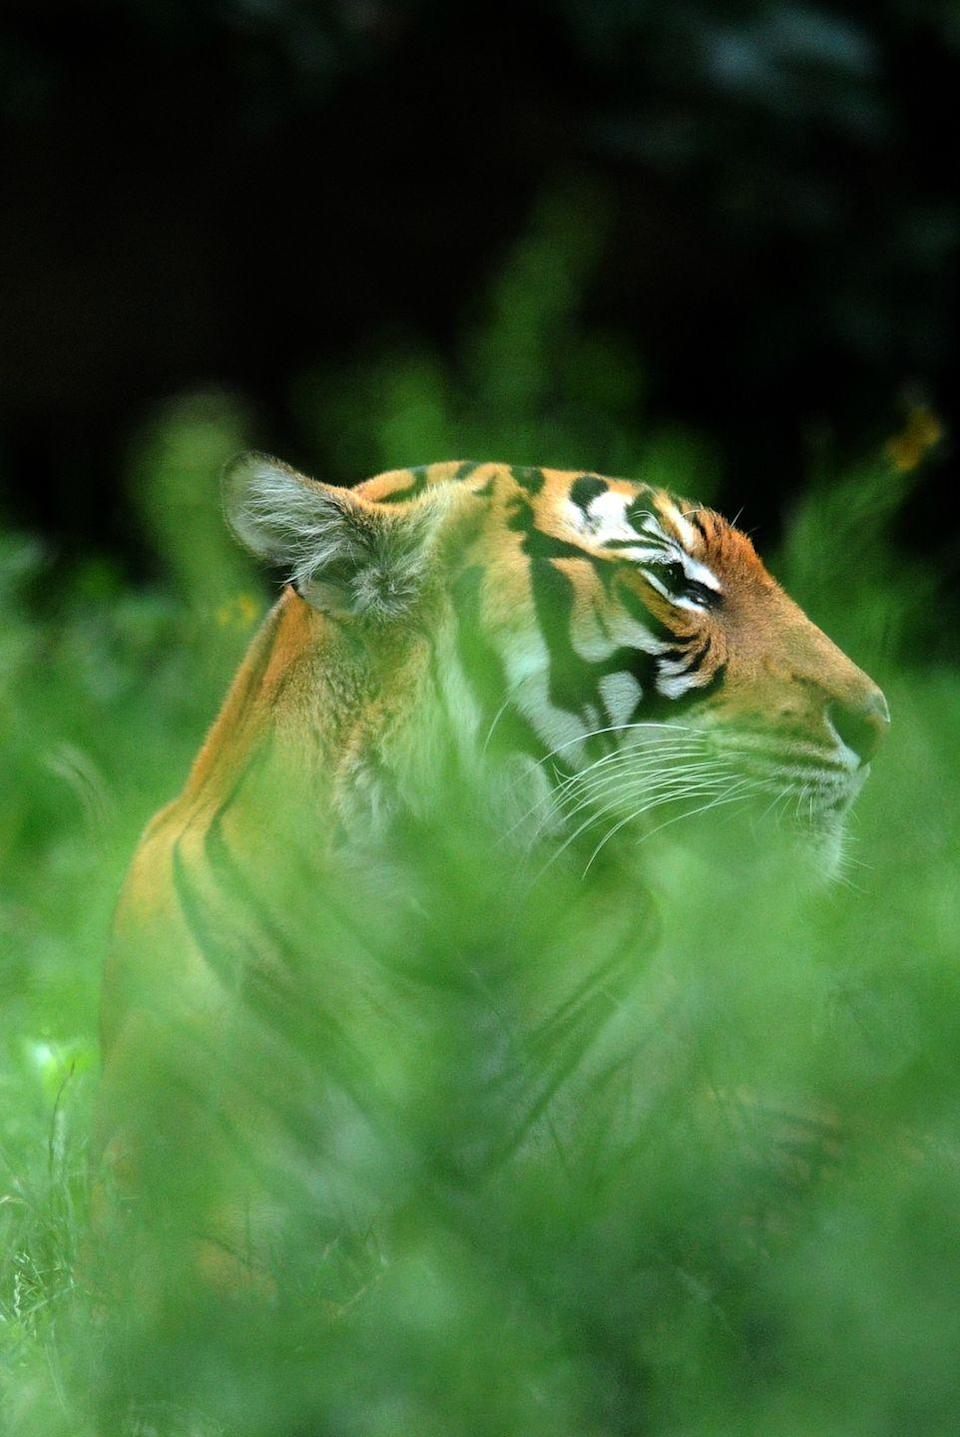 "<p><strong>Scientific classification:</strong> <em>Panthera tigris tigris</em></p><p><strong>Location: </strong>Malaysia</p><p>In a few forested areas of Malaysia and a small chunk of Thailand, between <a href=""https://www.zoo.org/tigers"" rel=""nofollow noopener"" target=""_blank"" data-ylk=""slk:250-340 Malayan tigers"" class=""link rapid-noclick-resp"">250-340 Malayan tigers </a>stalk their prey. They're a subspecies of the Indochinese tiger, which isn't doing so hot either. Poaching for meat and traditional medicine persists, and its habitat is being lost to development. </p><p>While there is a captive population of the Malayan tigers, all 54 are descended from just 11 tigers, making them too closely related to sustain a wild population. Not much is known about the behavior of the tigers. This makes conservation efforts that much harder, meaning the Malayan tiger could remain in permanent danger.</p>"